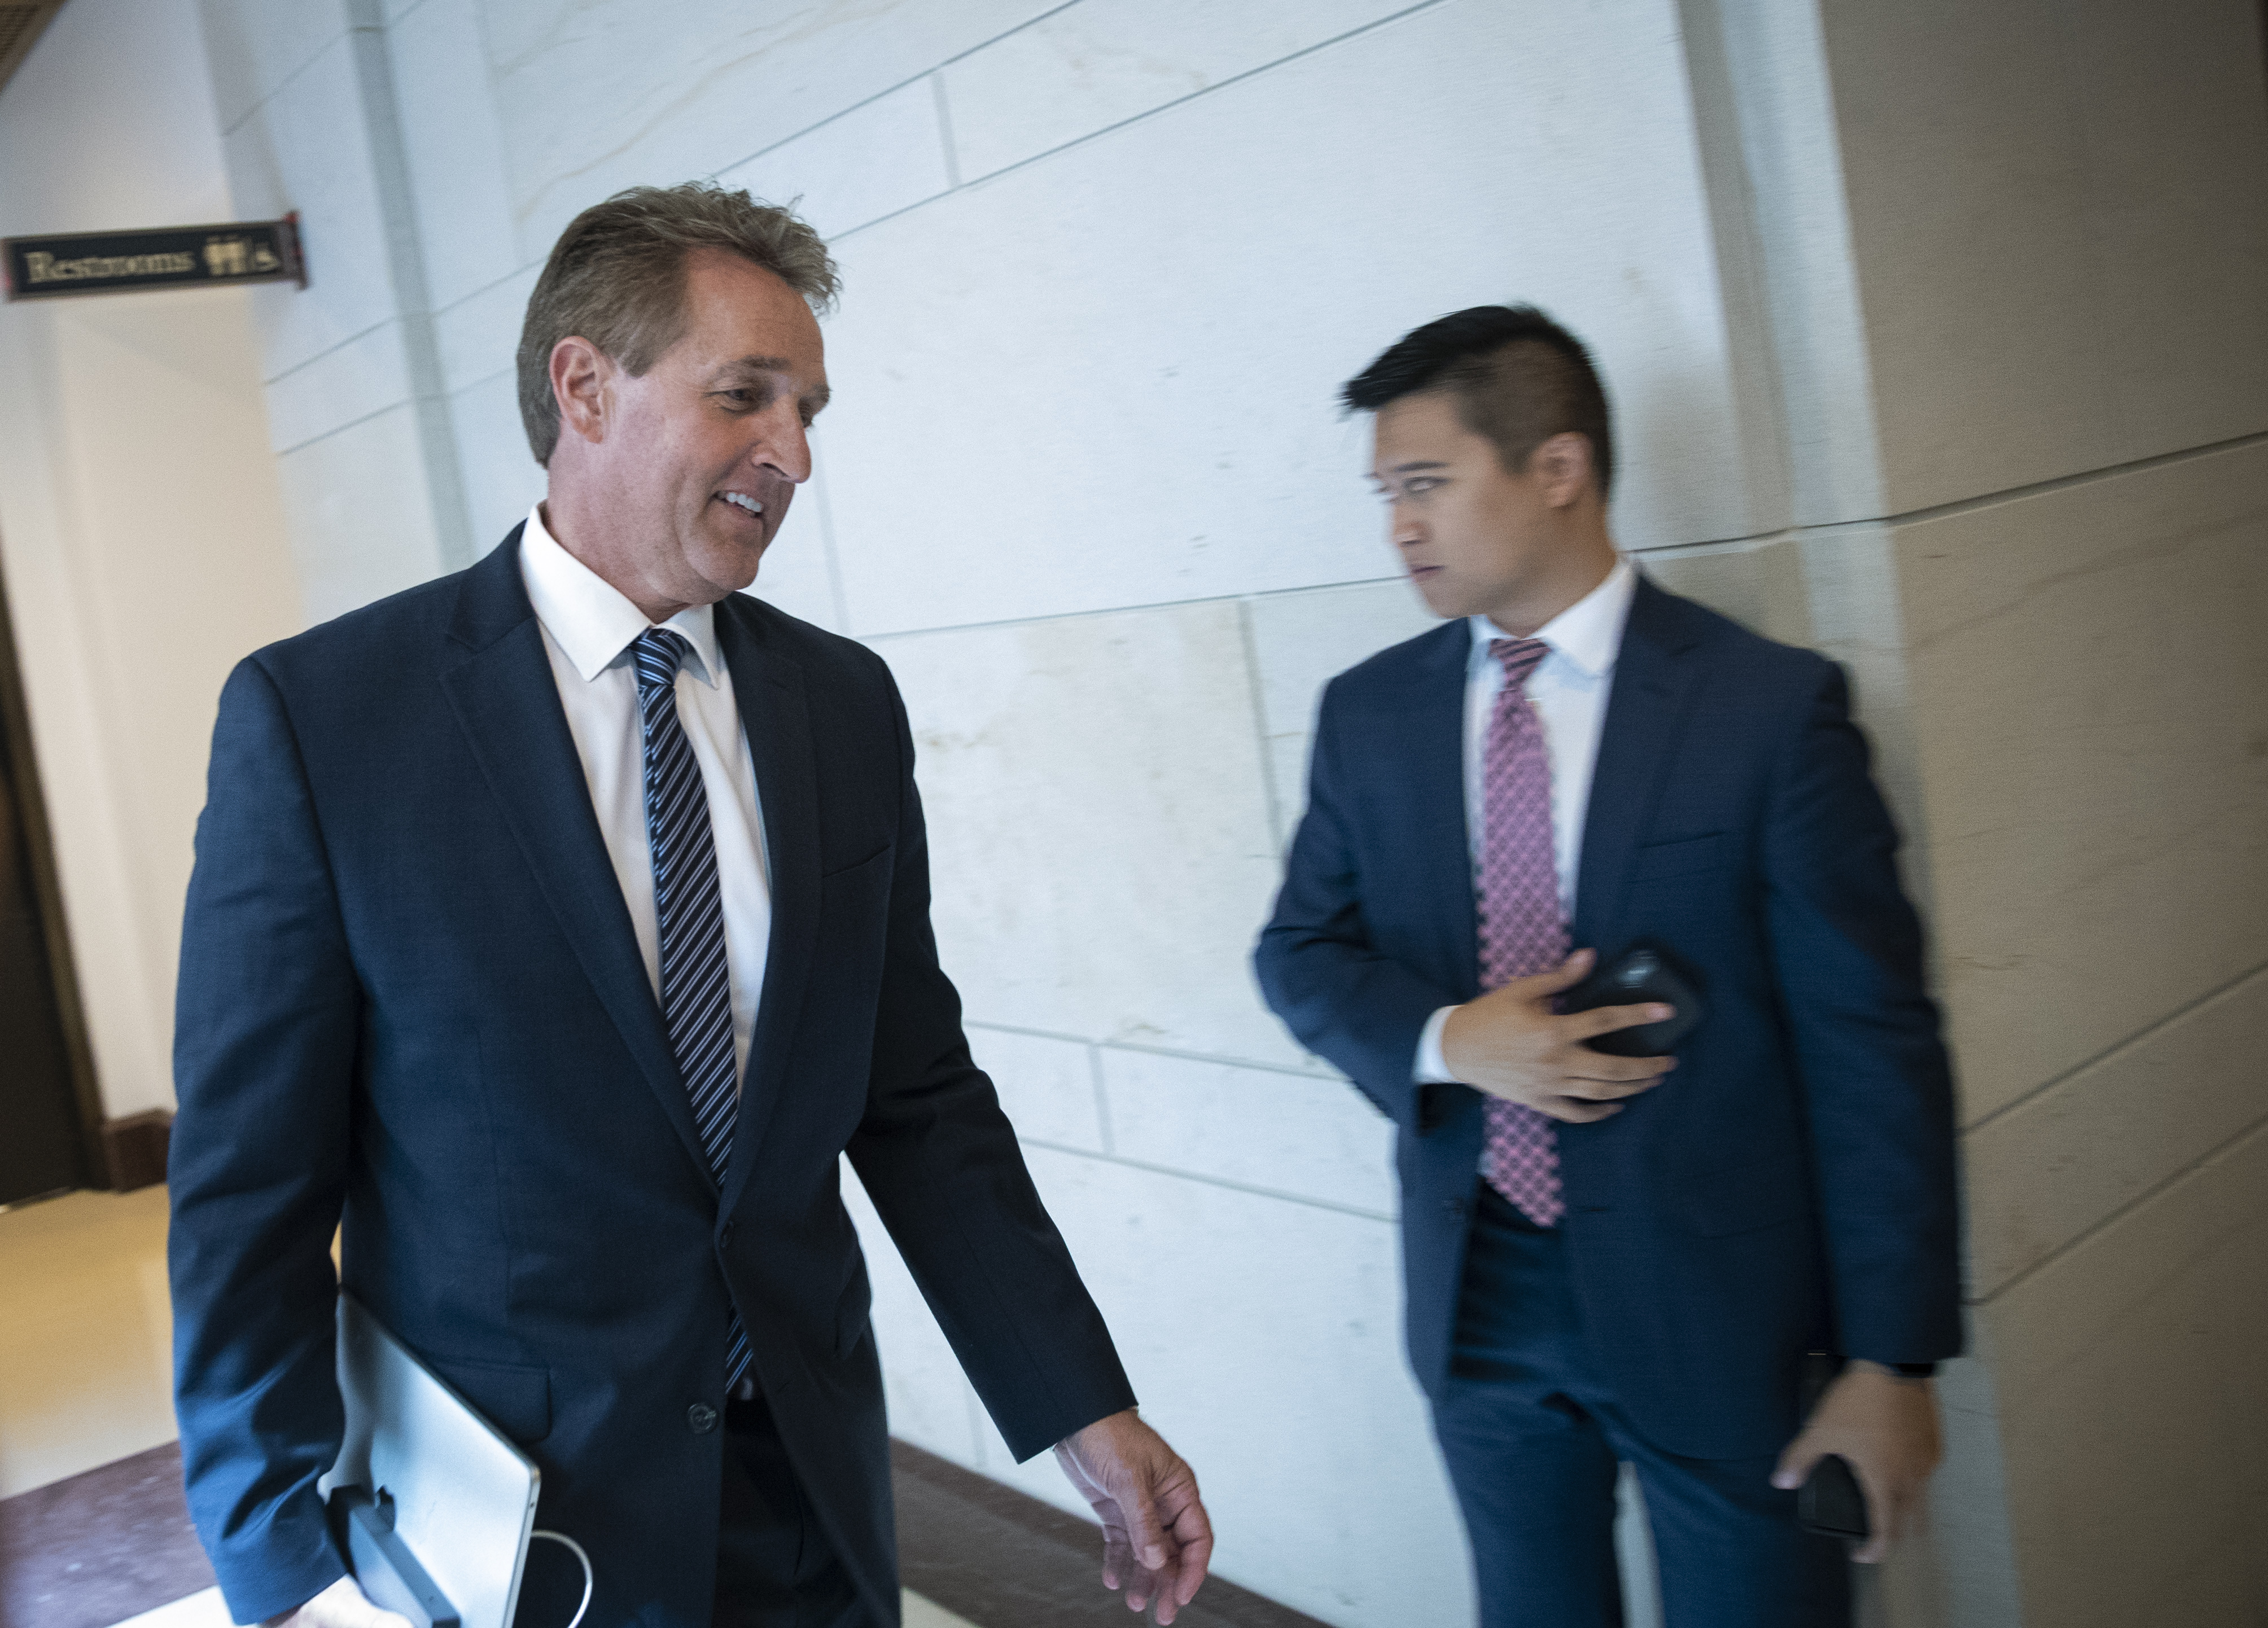 Flake is still making calls and weighing what to do